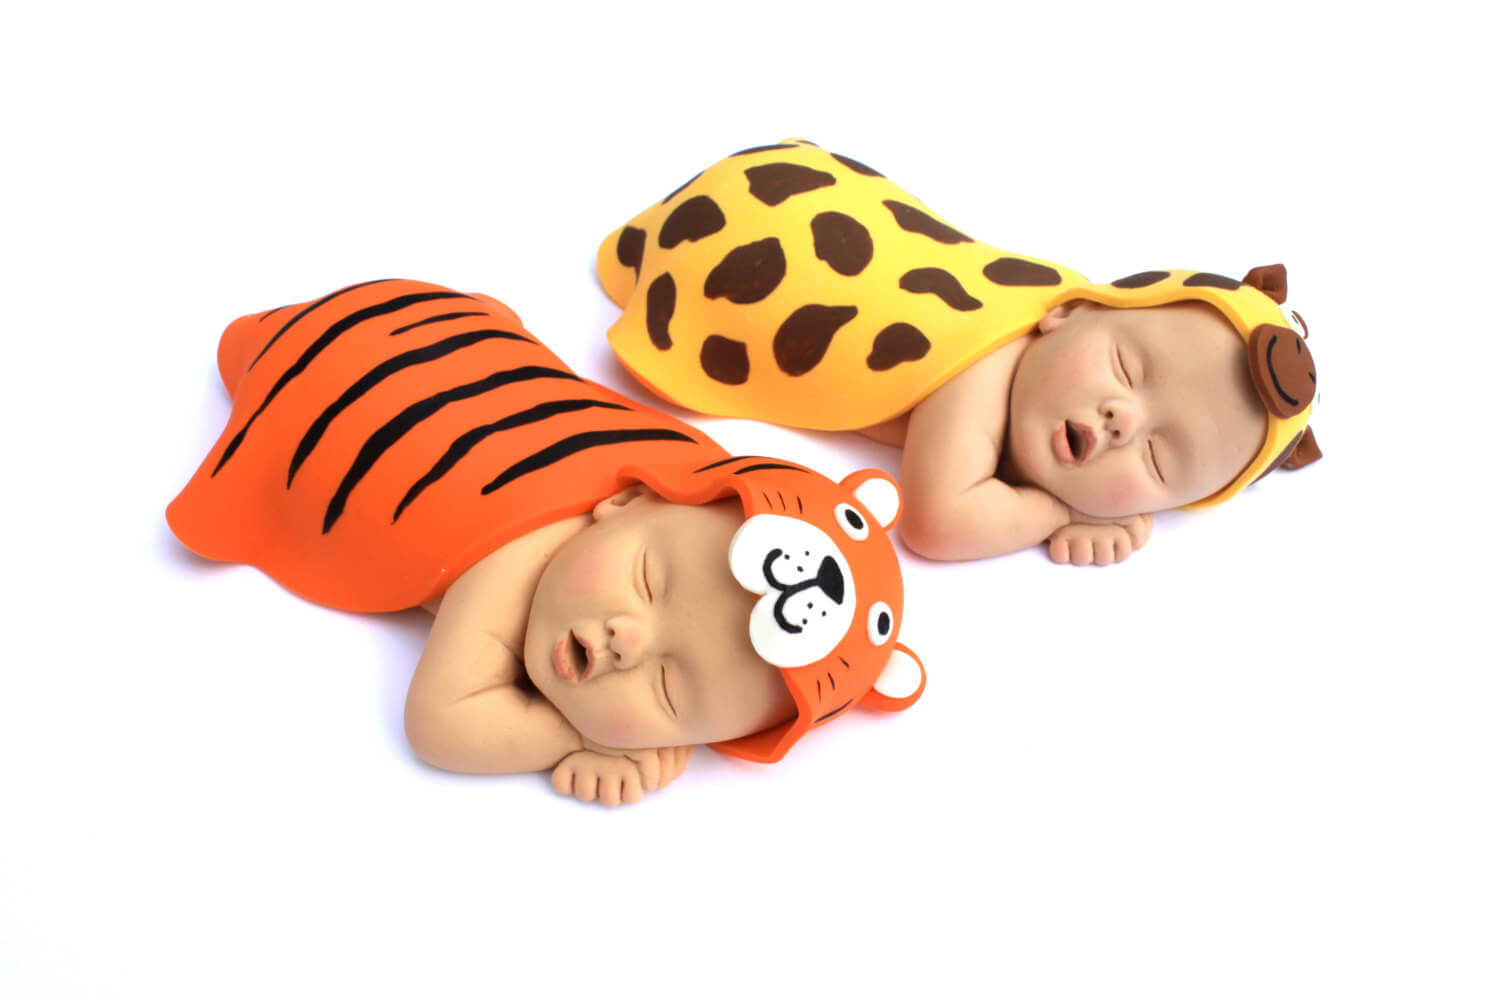 Baby Cake Topper Sugar Paste Twins Orange & Yellow Tiger and Giraffe Animal Blankets for Safari Baby Shower